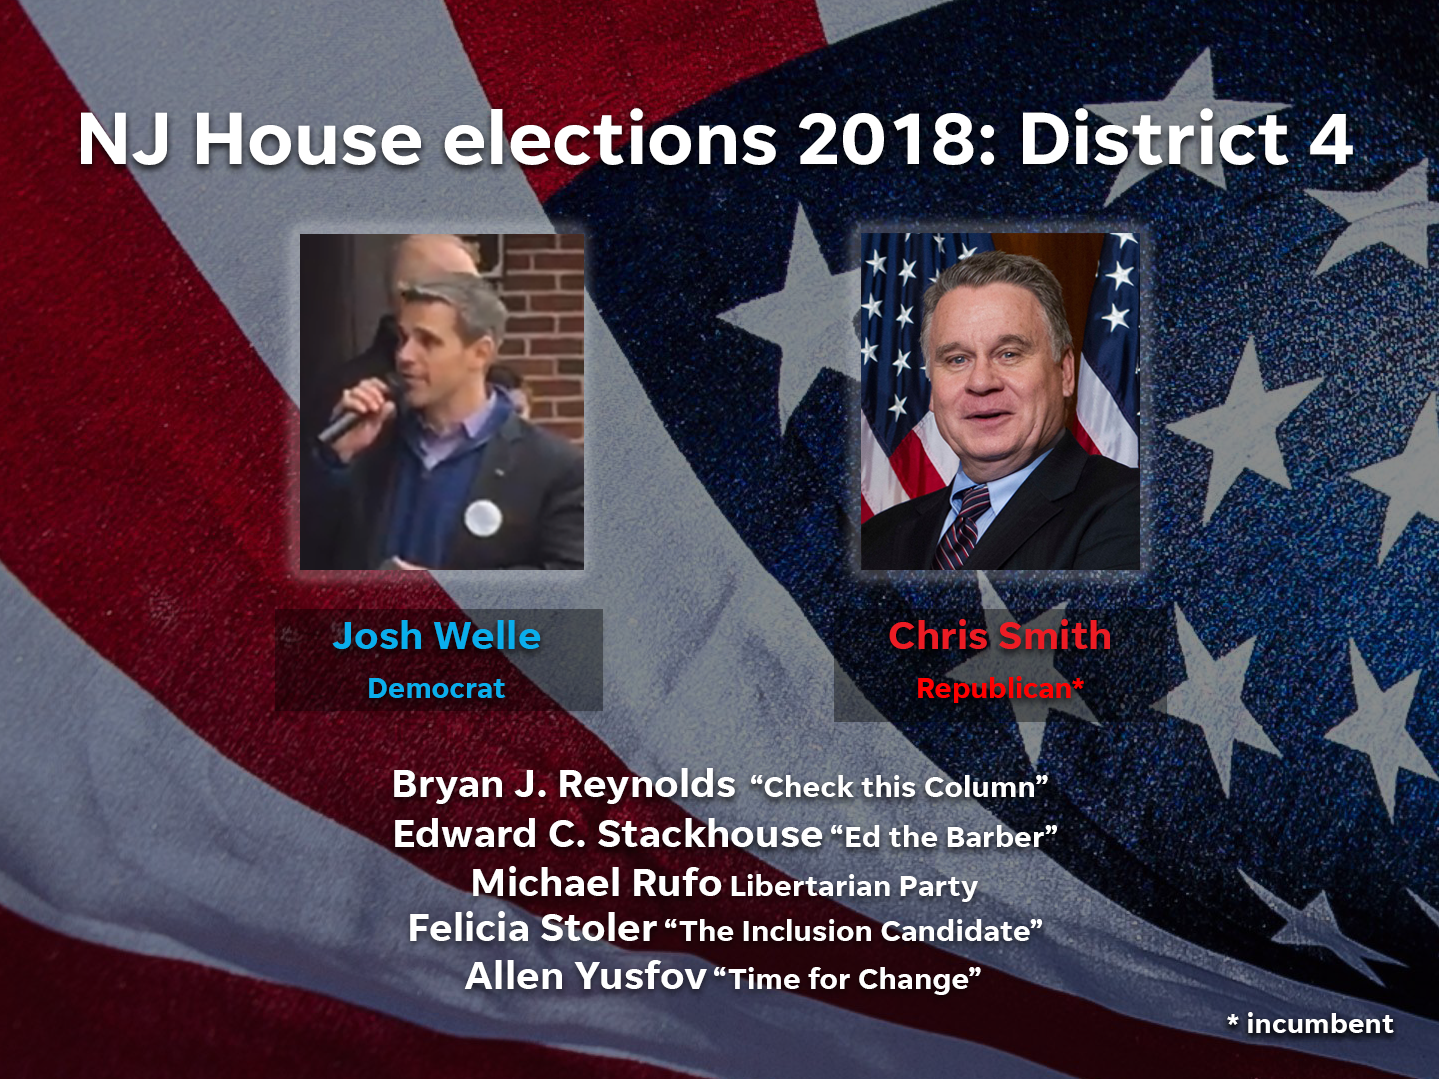 Josh Welle (D) and Chris Smith (R) are among the candidates running in District 4 in the 2018 NJ House elections.